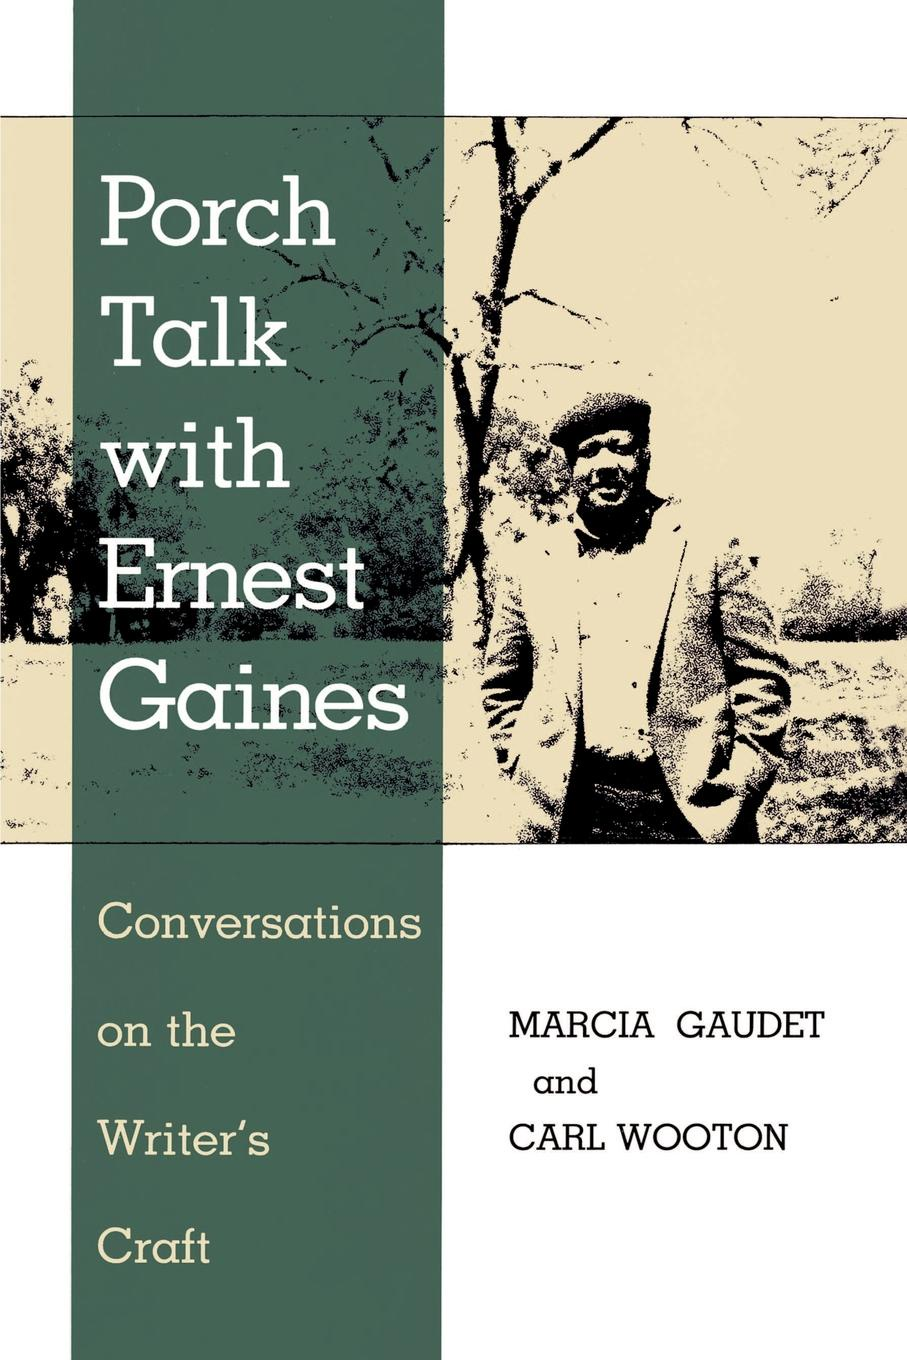 Marcia Gaudet, Carl Wooton Porch Talk with Ernest Gaines. Conversations on the Writer's Craft zygmunt bauman on education conversations with riccardo mazzeo